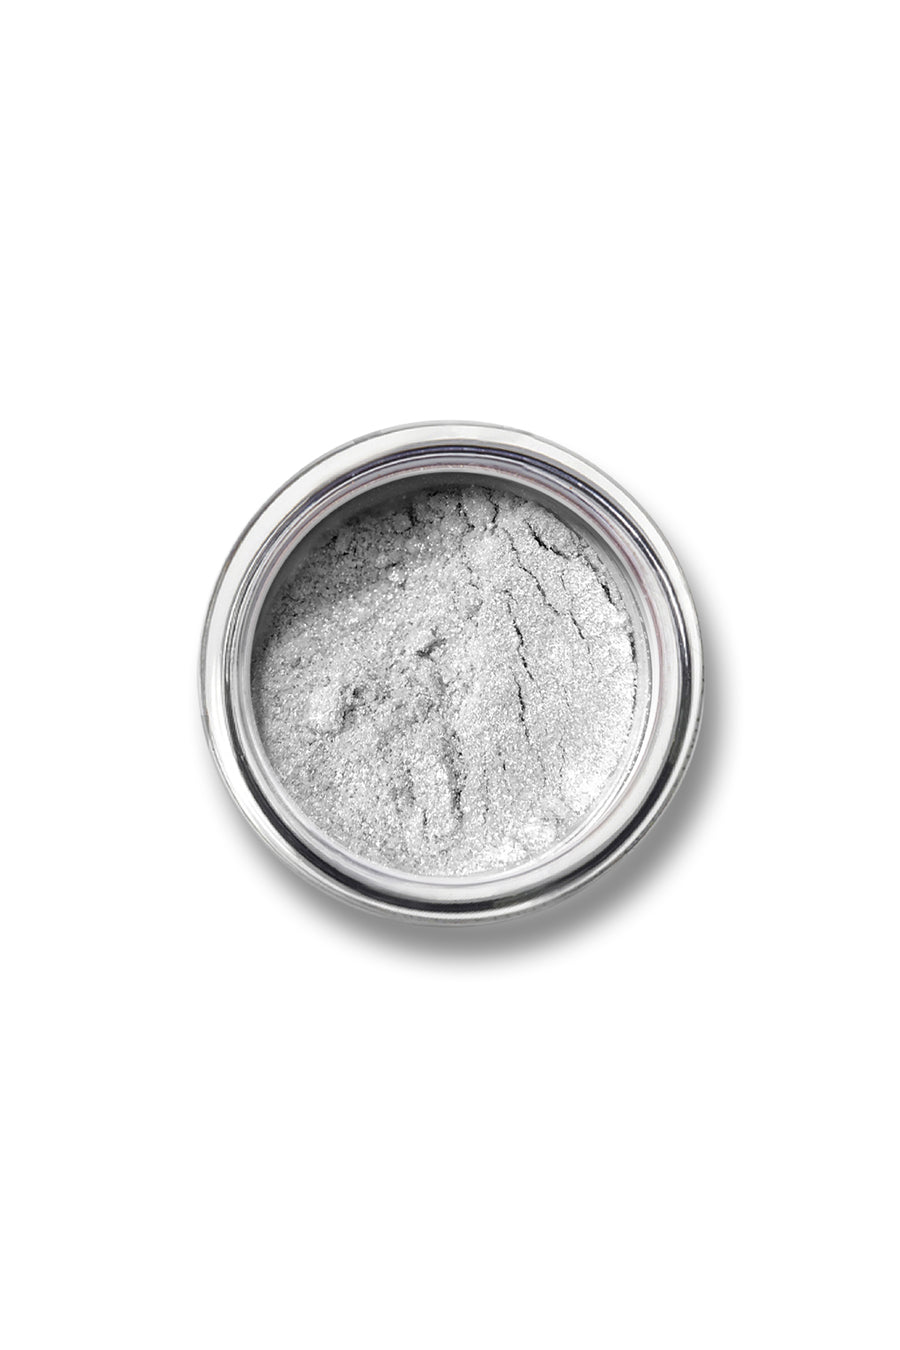 Shimmer Eyeshadow #20 - Shimmery White - Blend Mineral Cosmetics